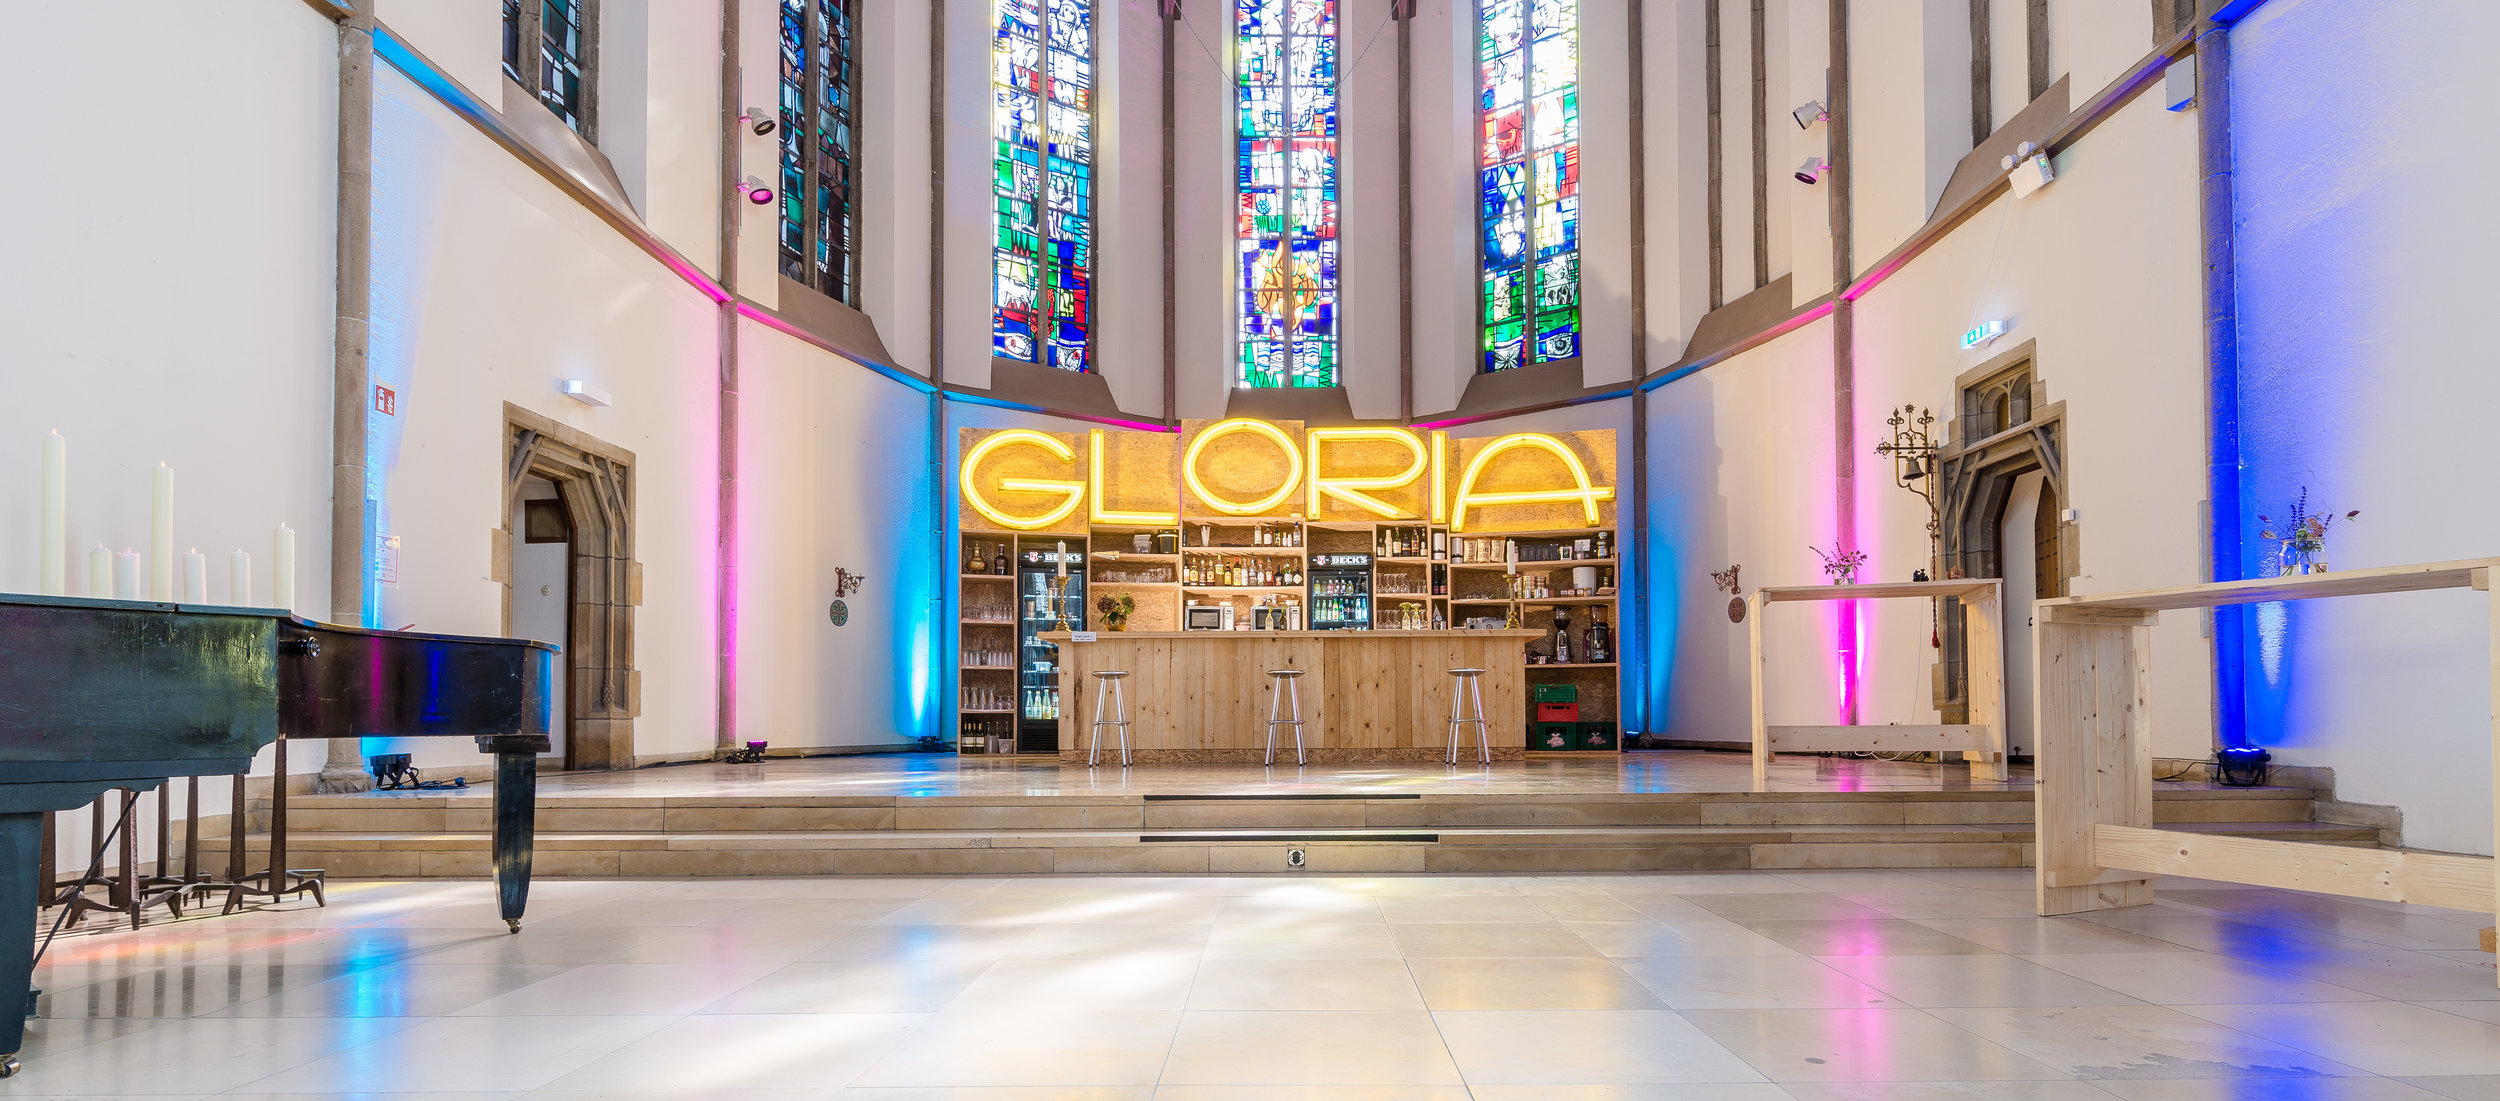 Gloria_Bar4_Foto_Conor_Crowe.jpg